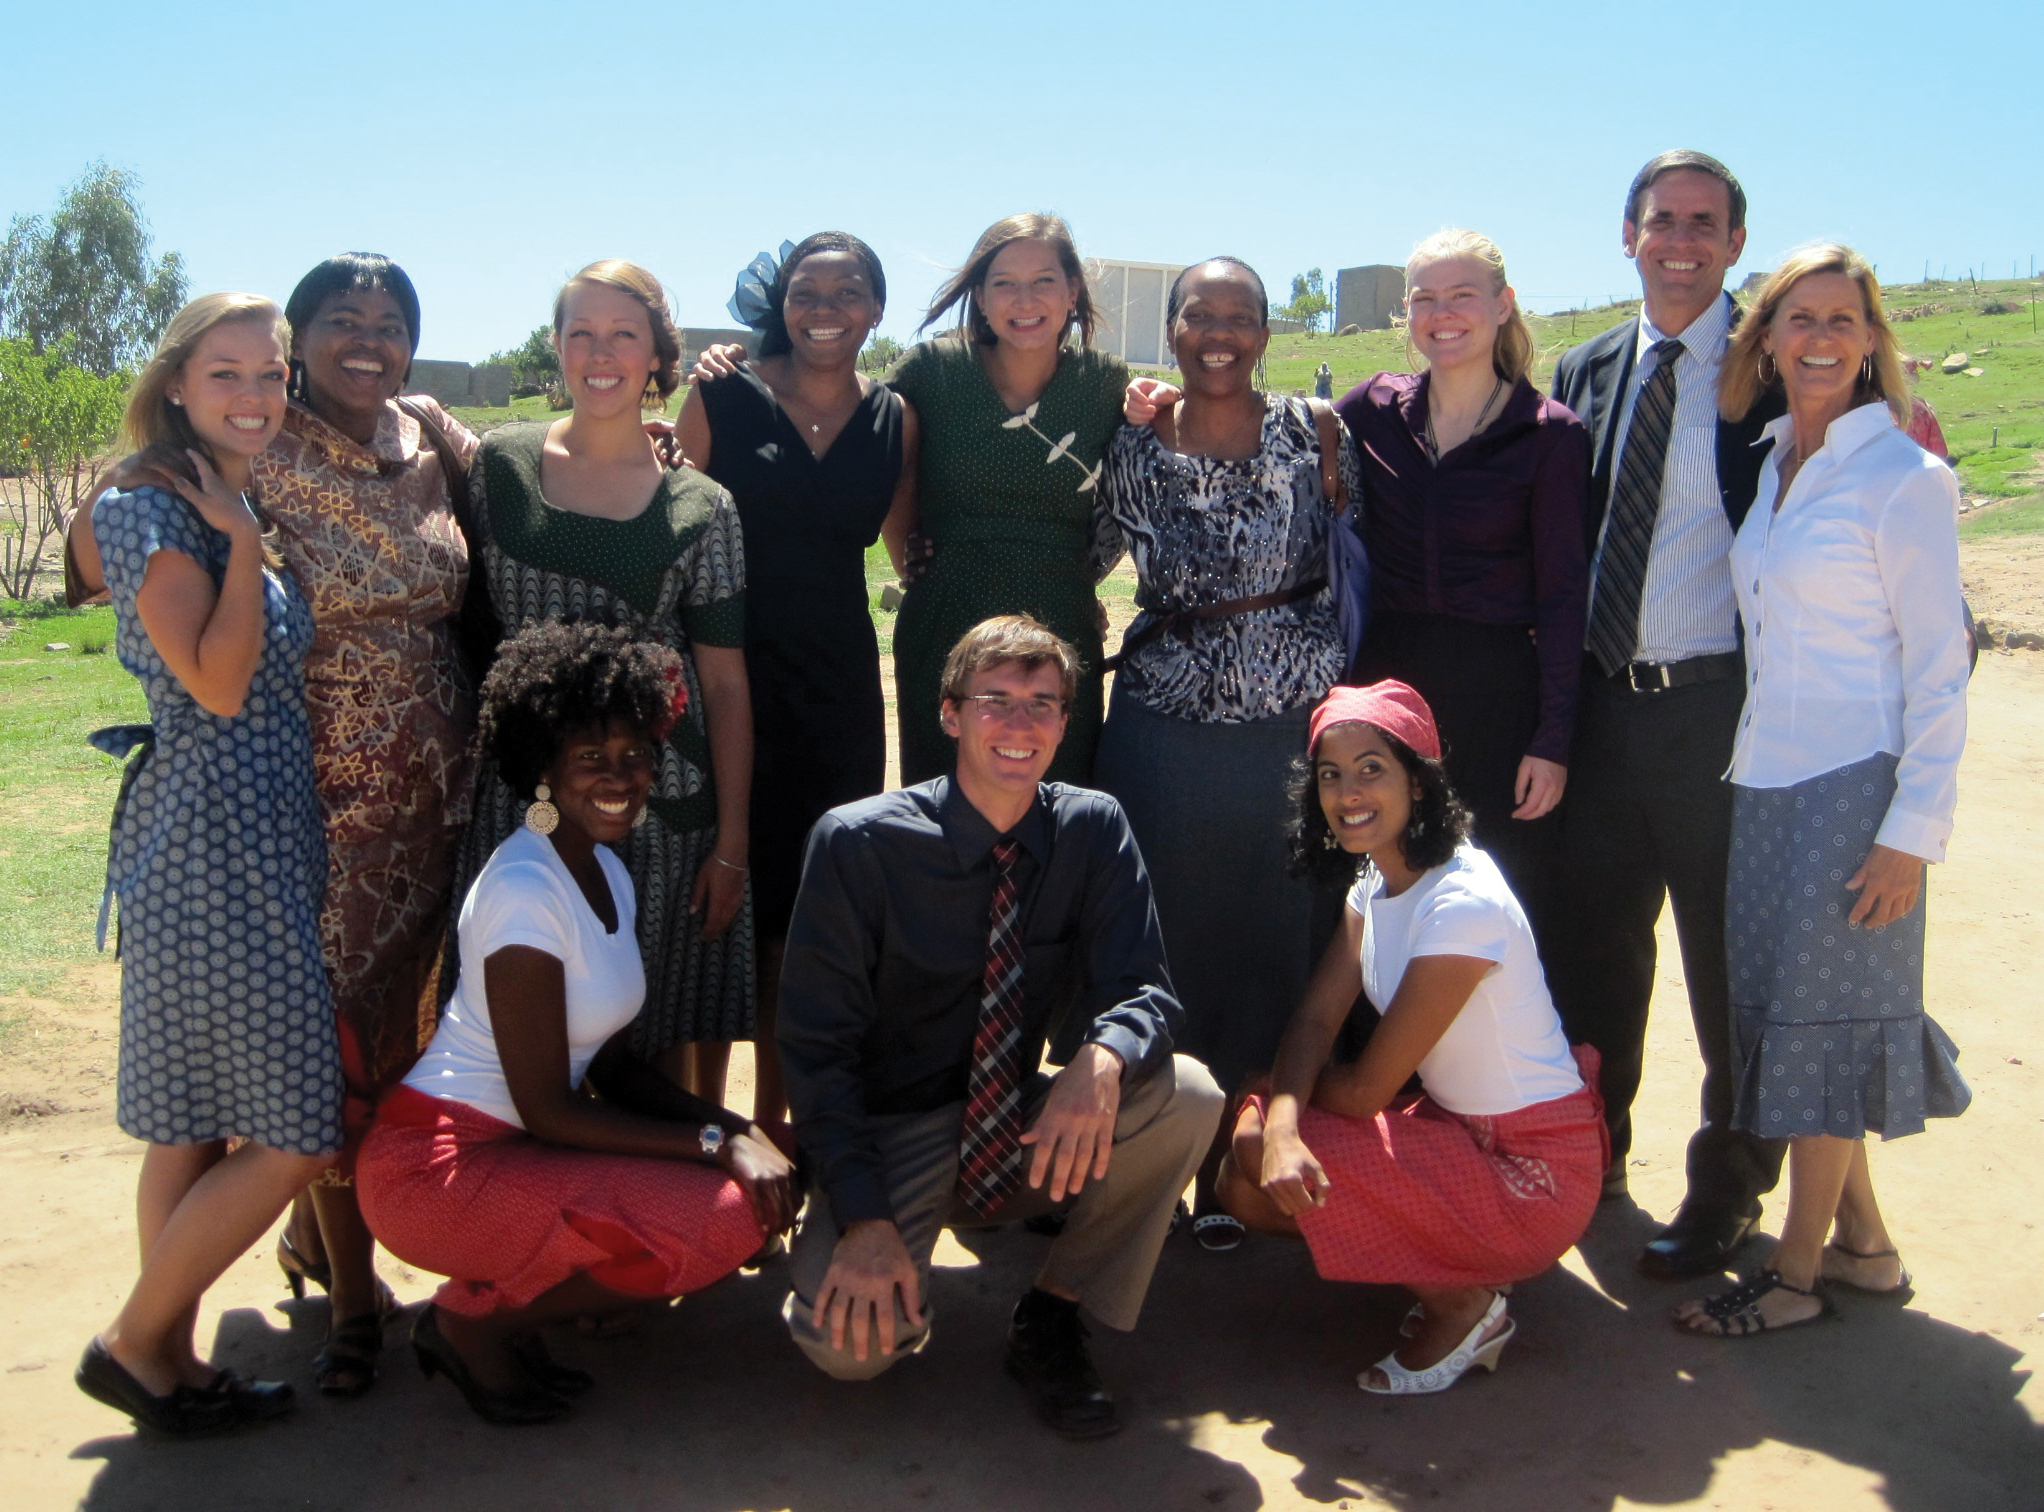 "After two months of in-country training, Sadie Nelson ('11), pictured far left, and members of her training group enjoy their day of ""swearing in"" as official Peace Corps volunteers in Lesotho, South Africa. Nelson applied to the Peace Corps shortly after graduation. Her in-country training included passing a language proficiency test of the country's official language, Sesotho. Through a new partnership between the University and the Peace Corps, Truman students who volunteer can also work toward their master's in leadership during service time."